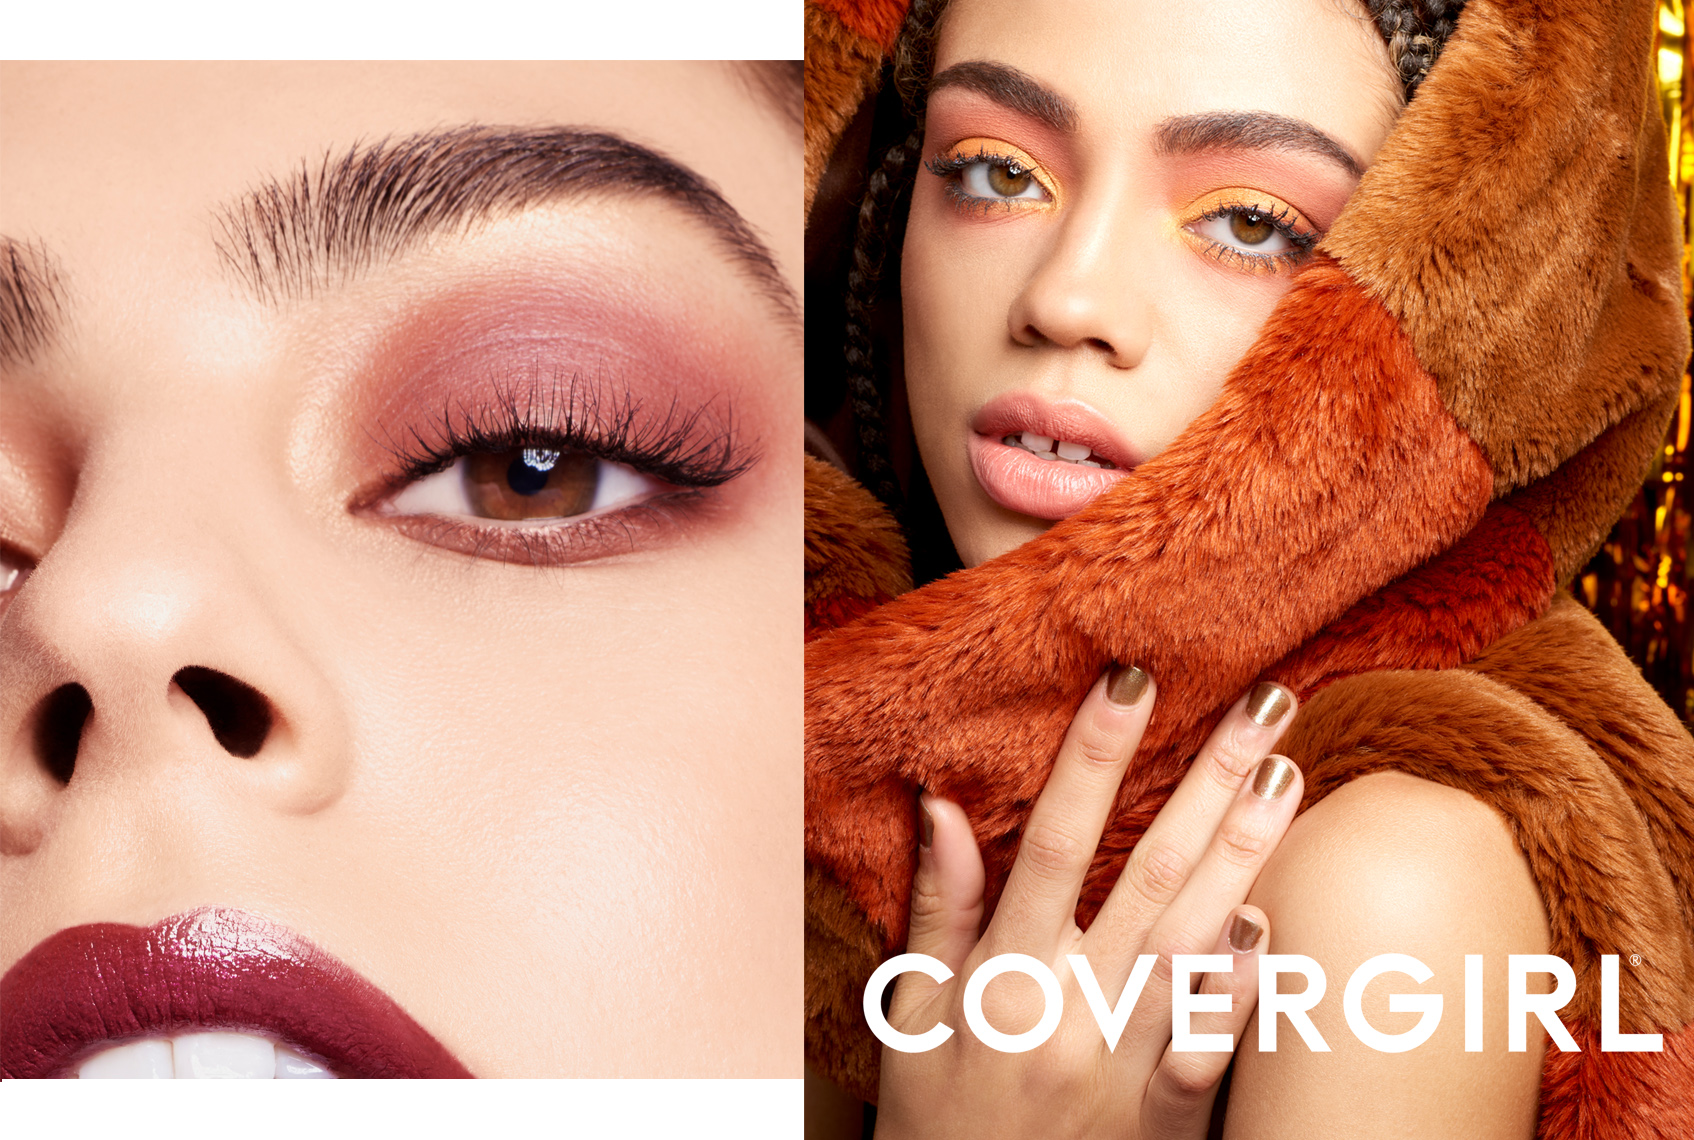 REvised_covergirl_final